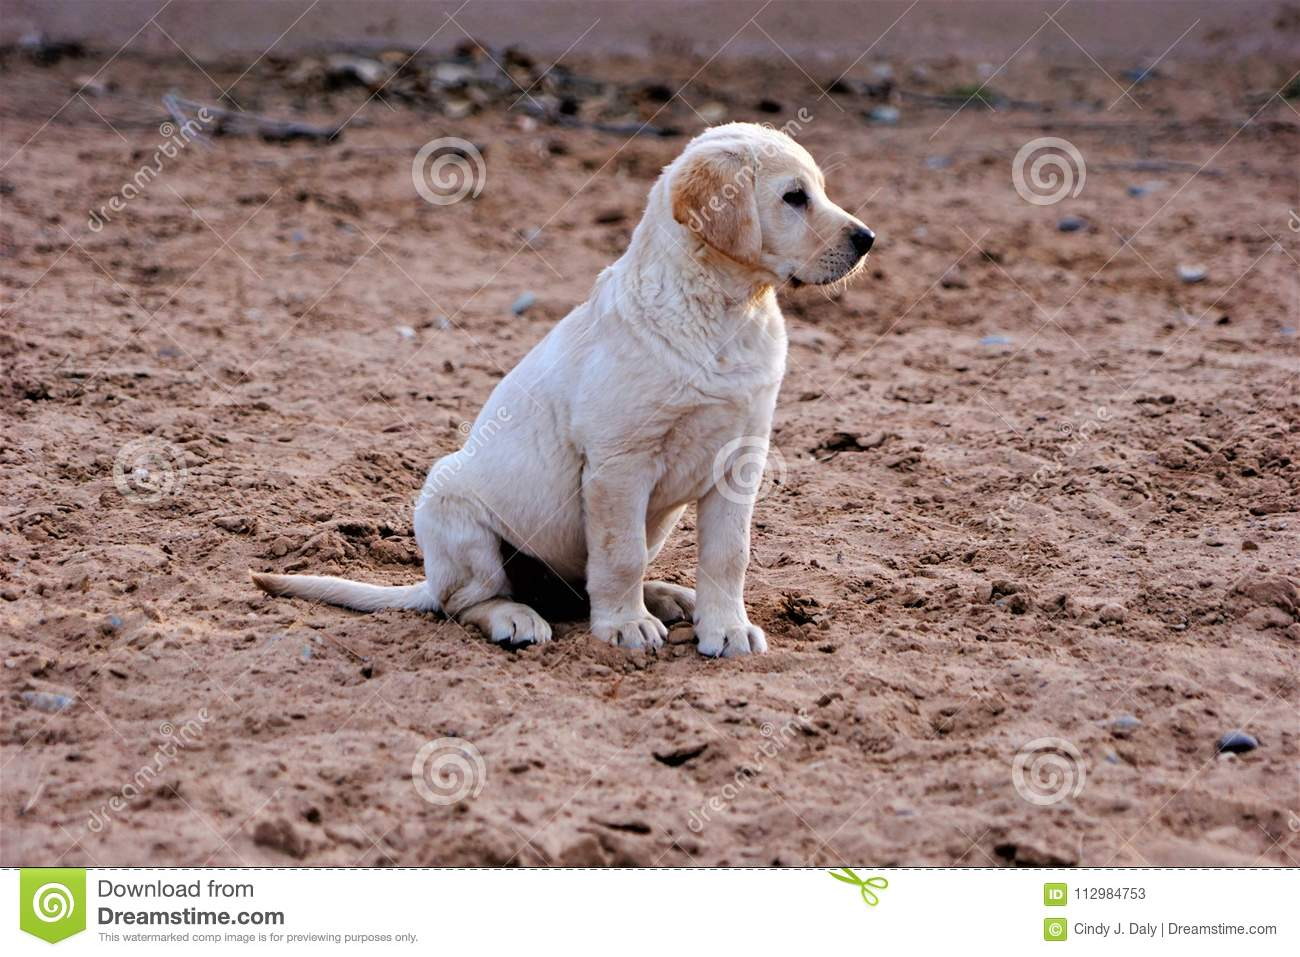 A photograph of a yellow labrador puppy sitting in the sand